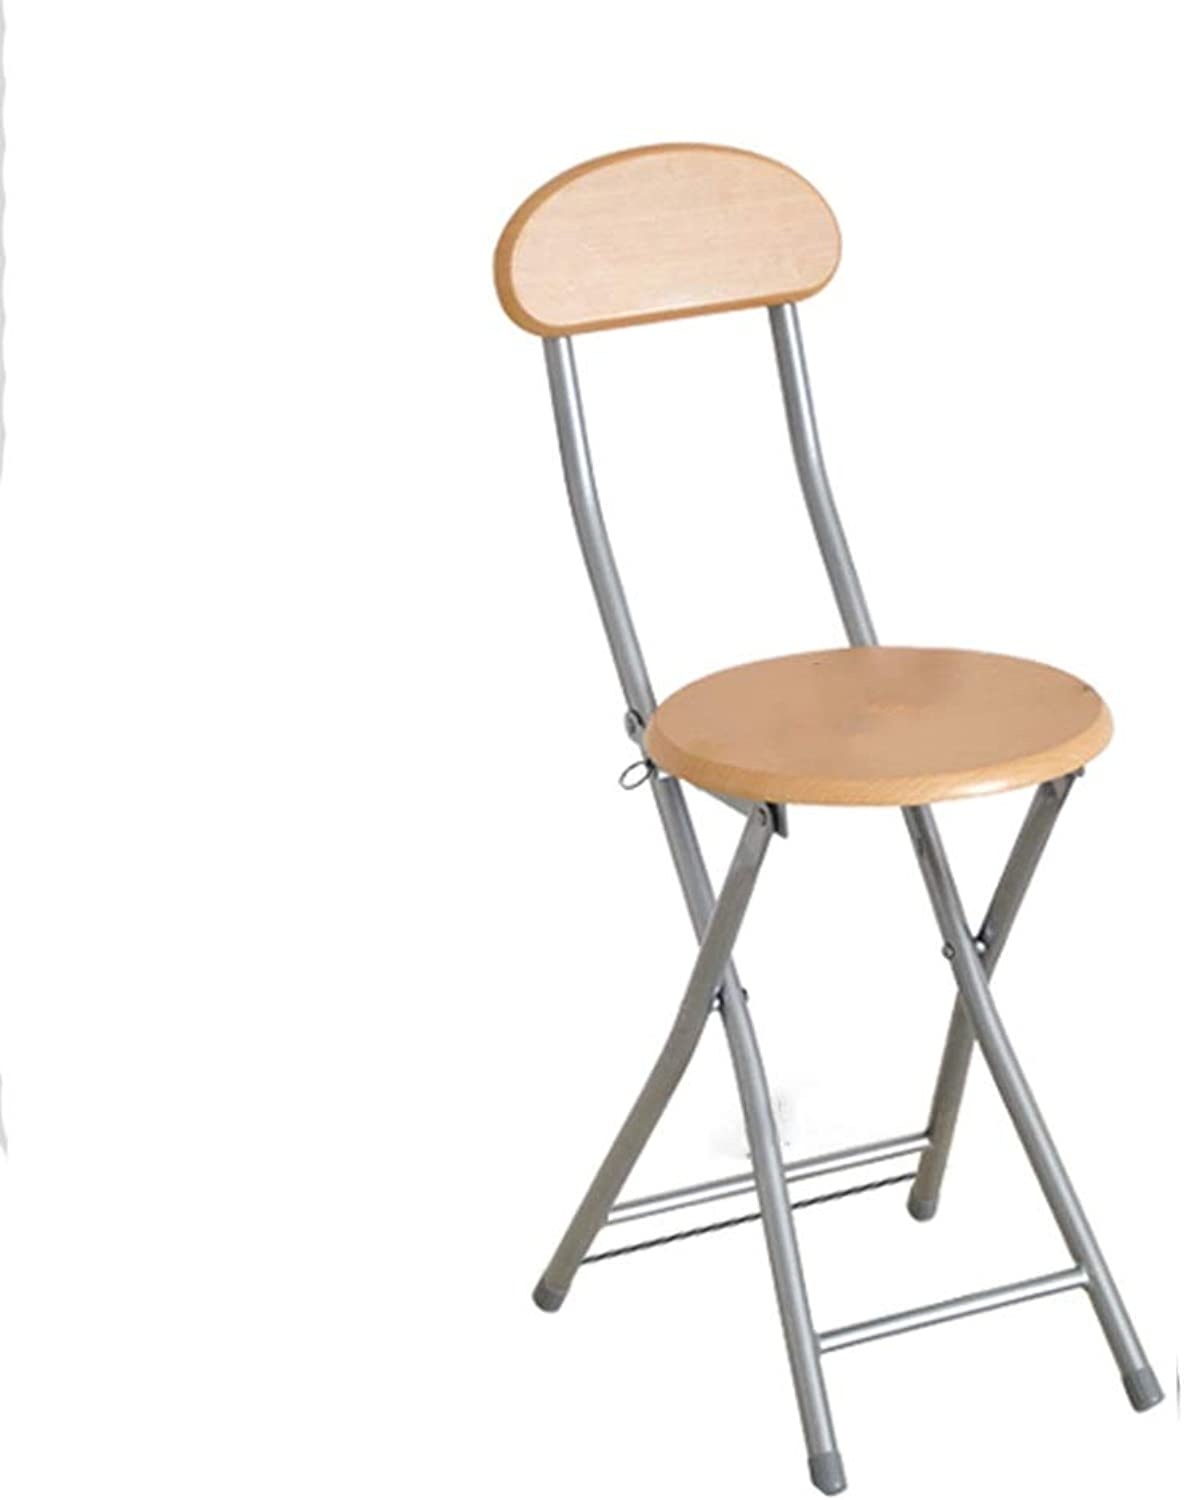 Folding Dining Chair Portable Folding Stool Office Chair Computer Chair Simple Modern Leisure Chair